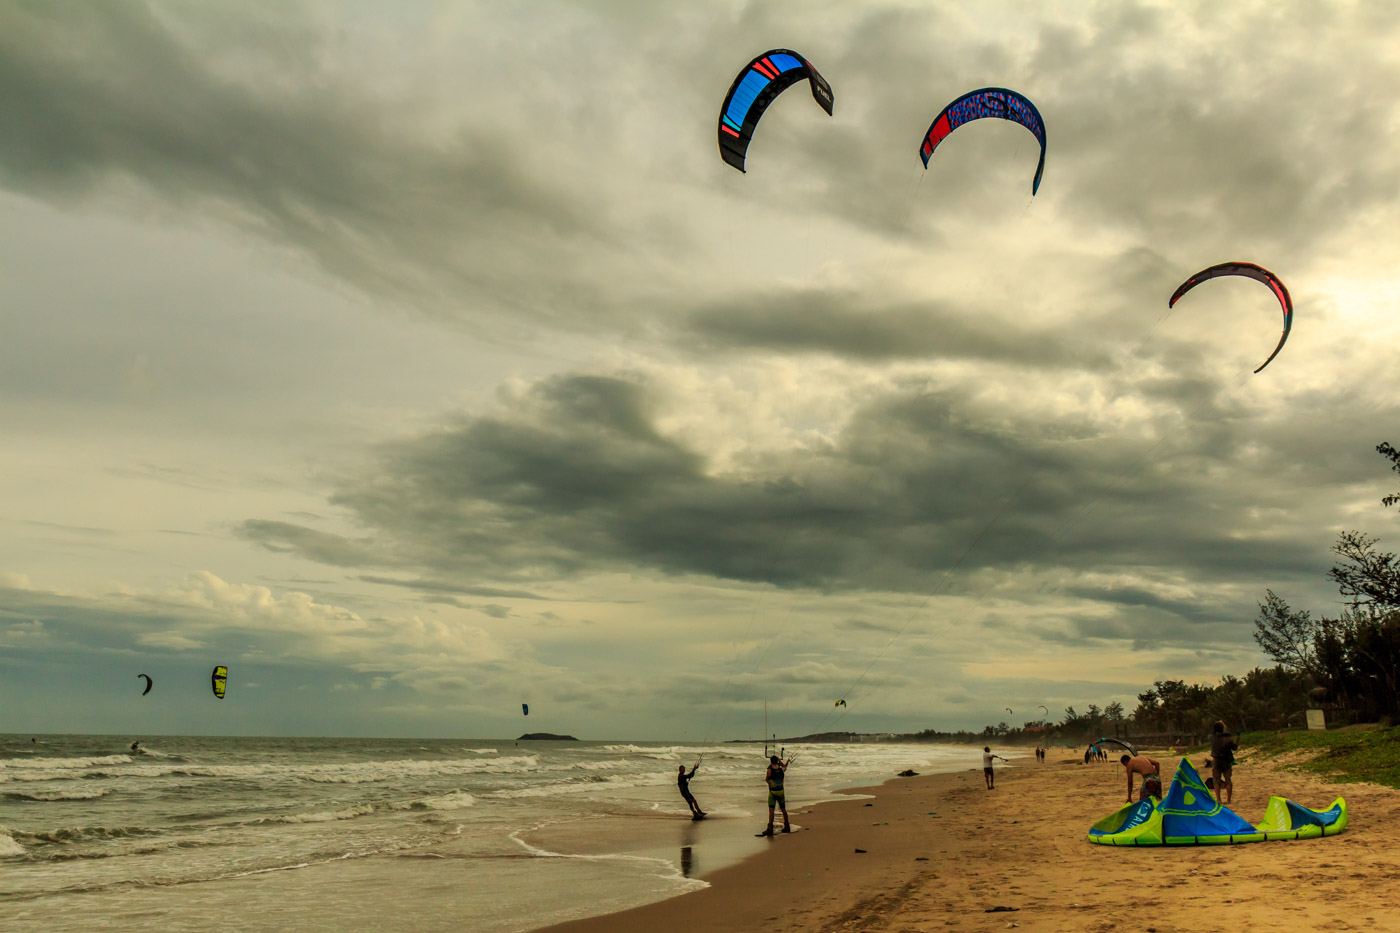 Kite surfers doing their thing.